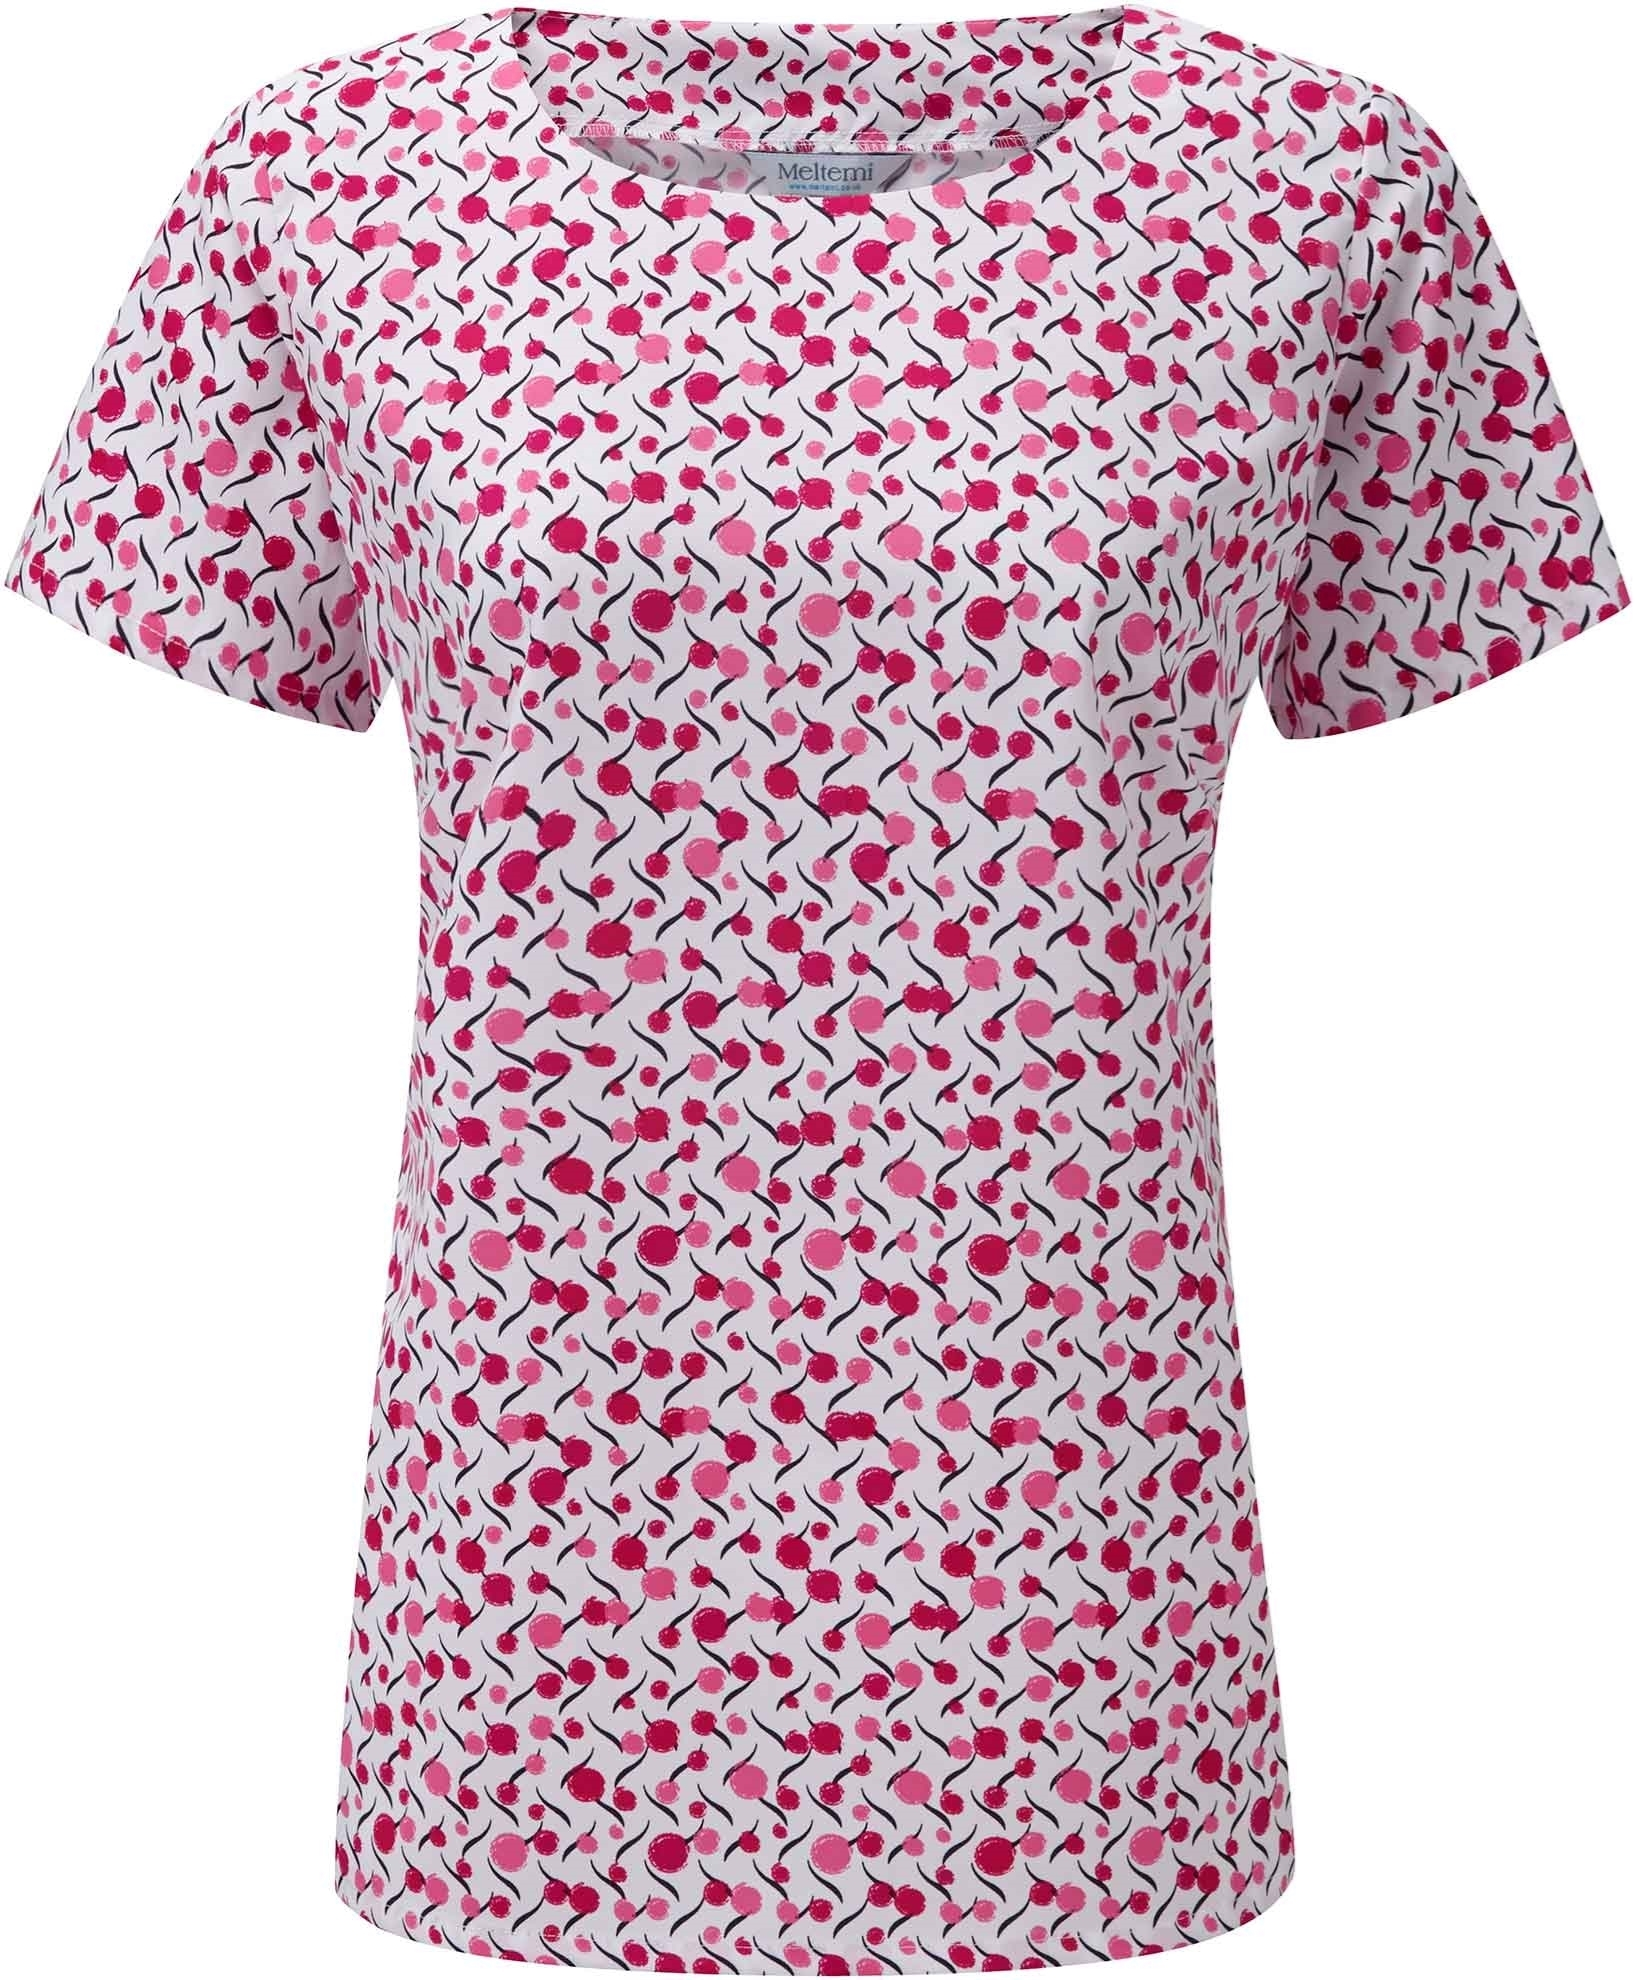 Picture of Round Neck Coolweave Blouse - White/Cerise Chloe Print